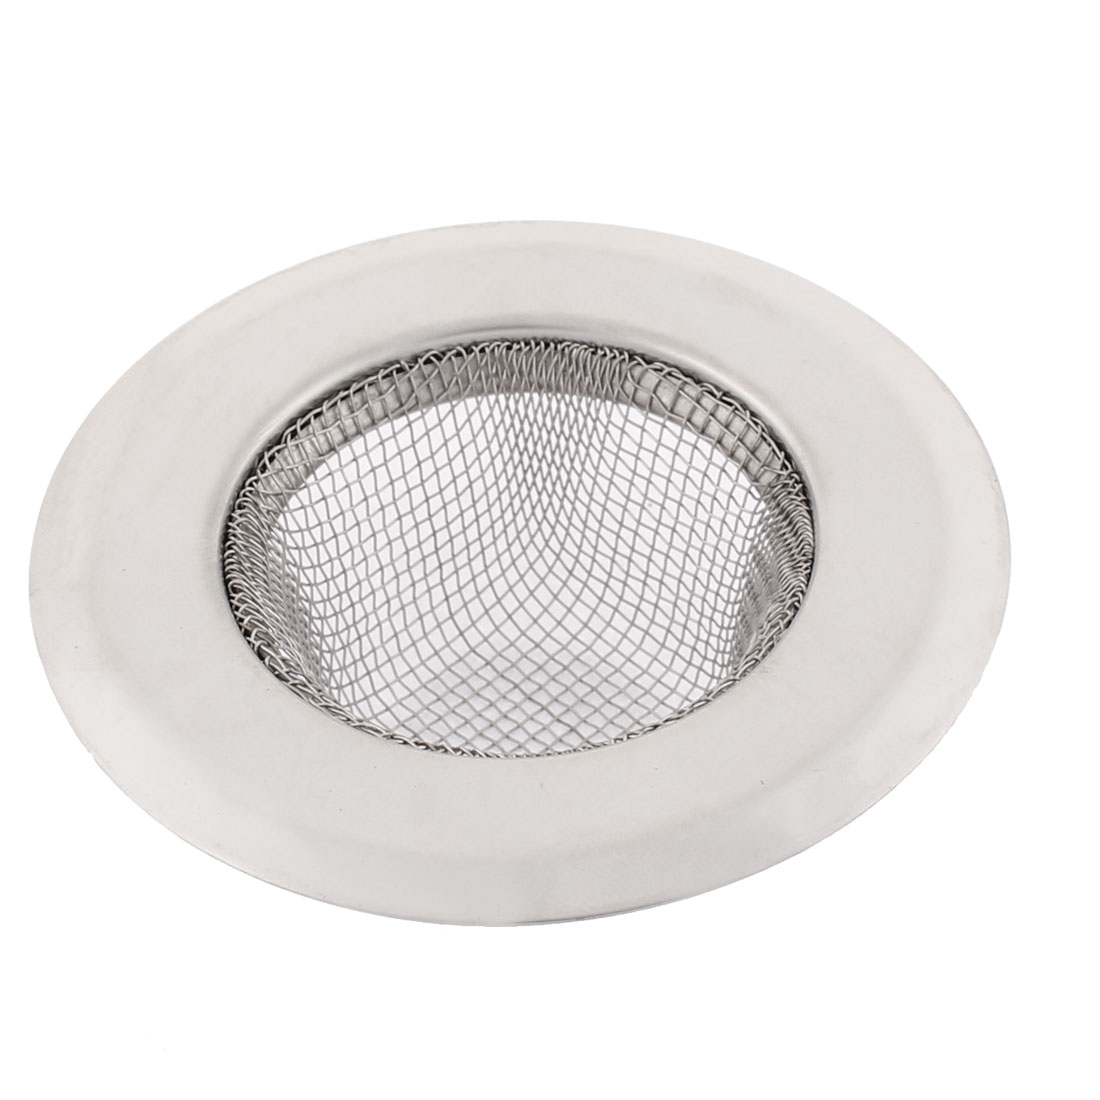 Bathroom Stainless Steel Sink Basin Water Drainer Strainer Filter 7cm Outer Dia